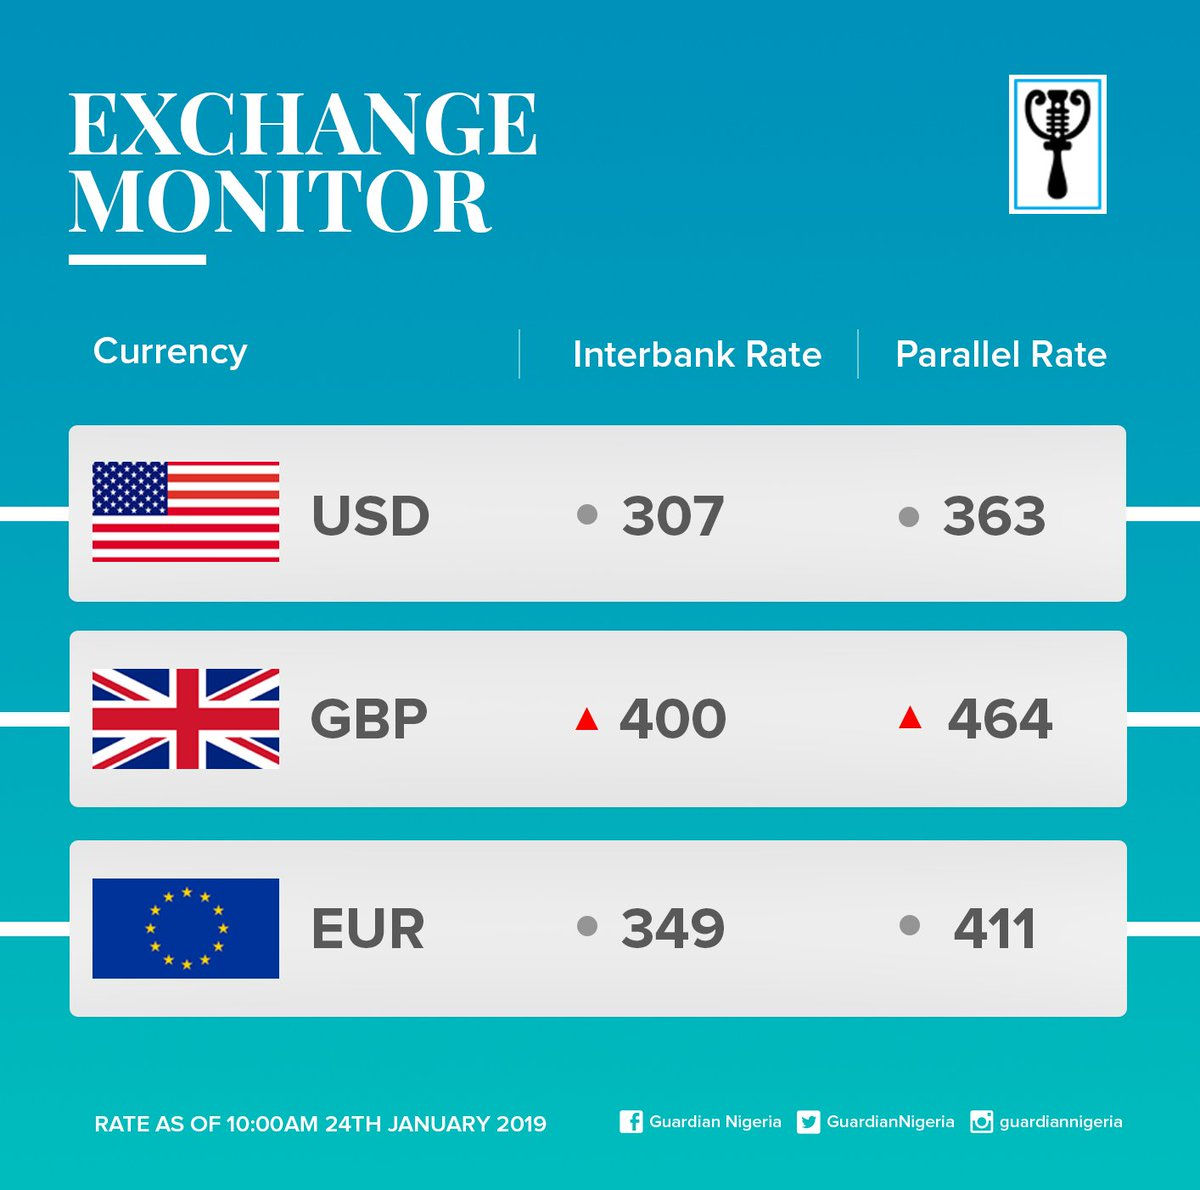 Guardianexchangerate Forex Fx Forextrader Currency Cbn Exchangerate Naira Pounds Euro Dollars Theguardianng Https T Co Asuoe0dyfr